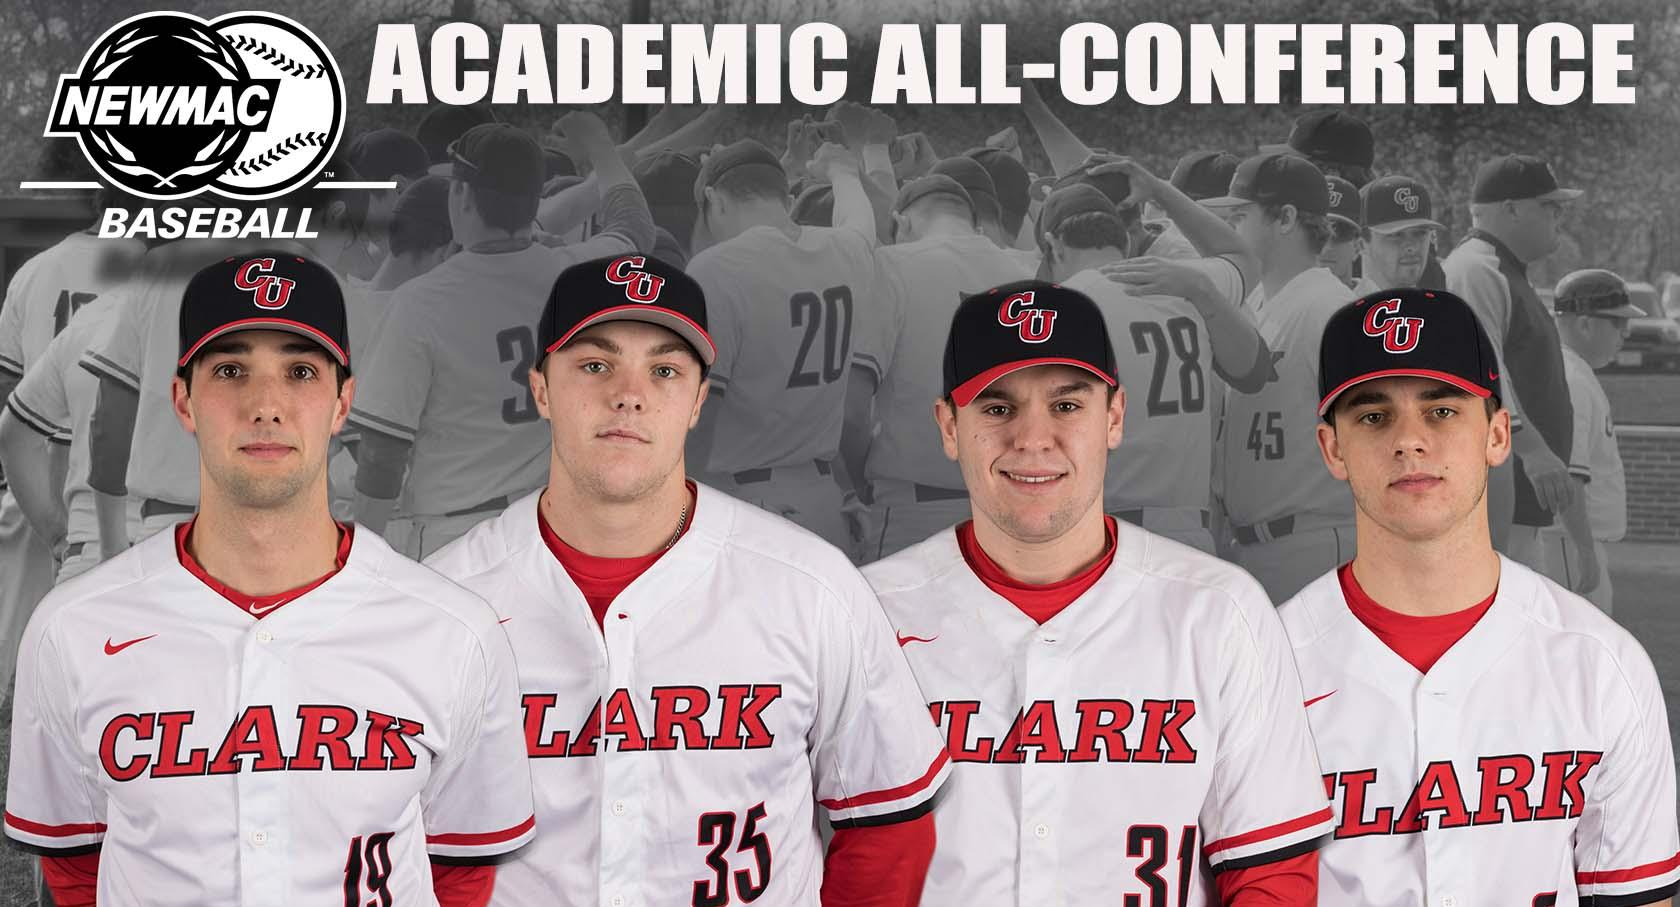 Dobratz, Sawden, Kelley, Horn Named to NEWMAC Baseball Academic All-Conference Team